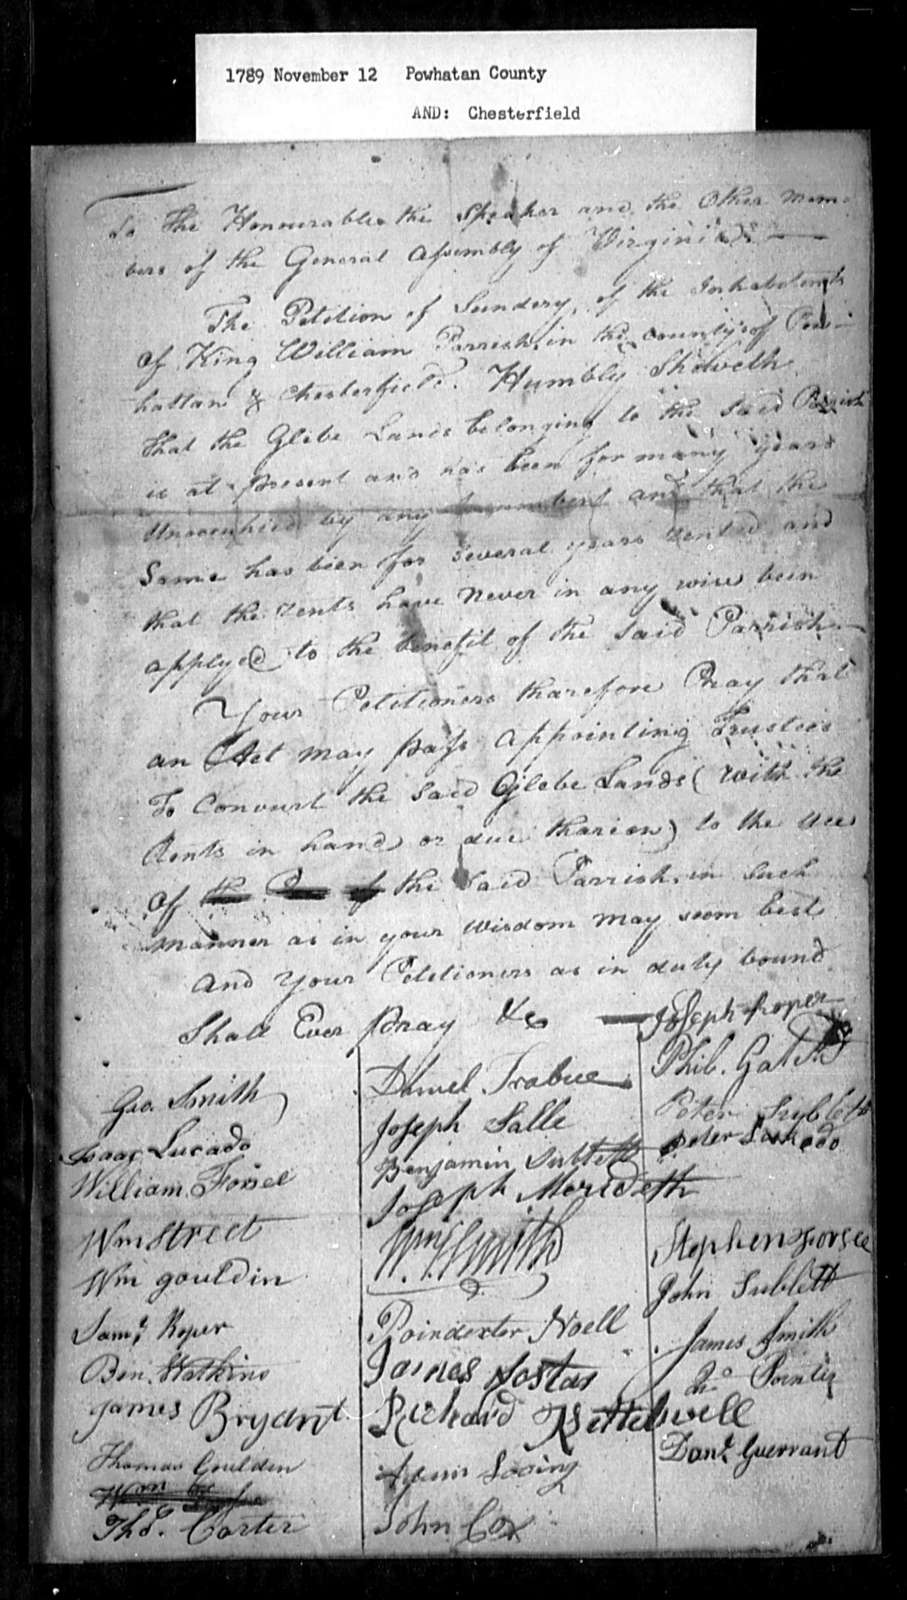 November 12, 1789, Powhatan, Chesterfield, King William Parish, for act to allow trustees to sell glebe lands.